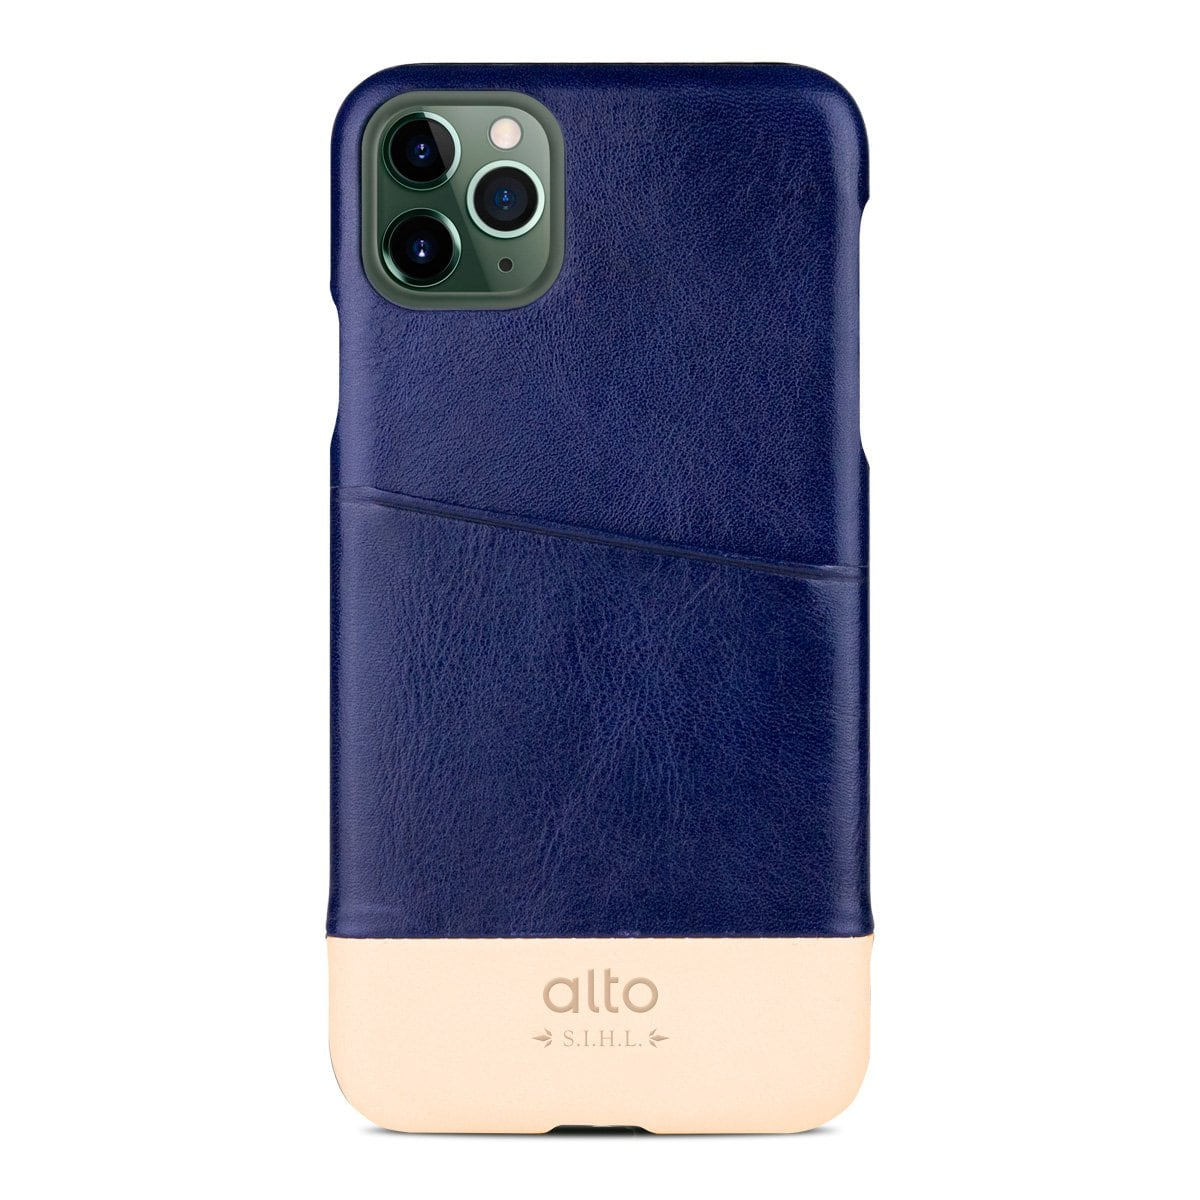 iPhone 12 Pro Max Full Wrap Case - Blush Nude - The